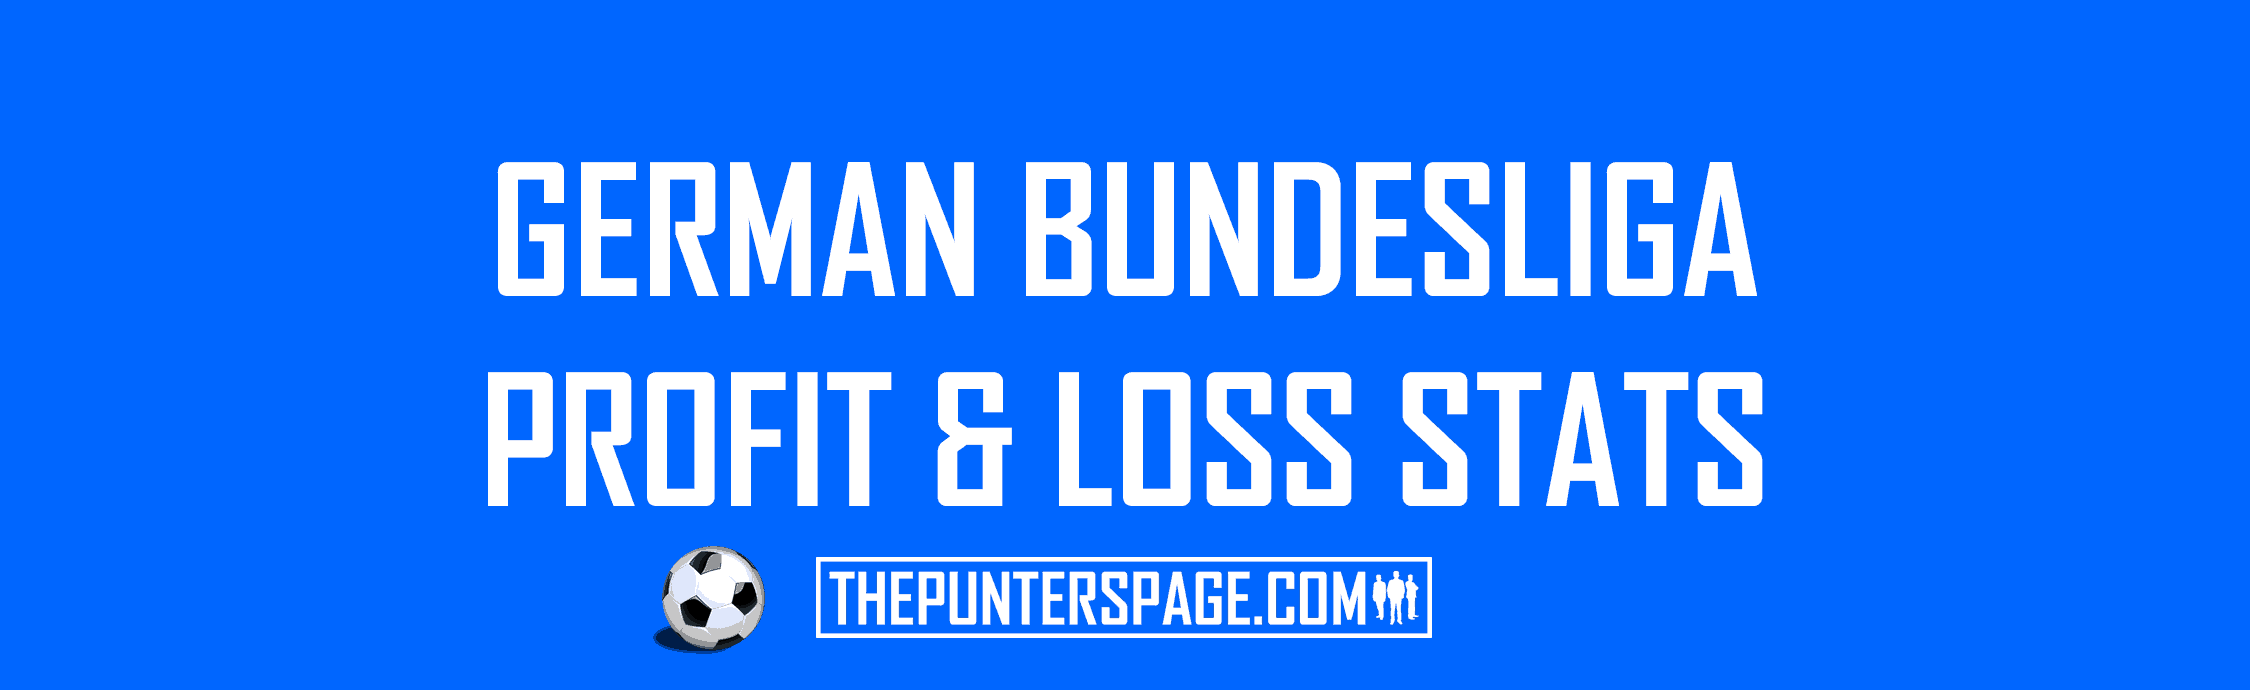 German Bundesliga Profit & Loss Statistics